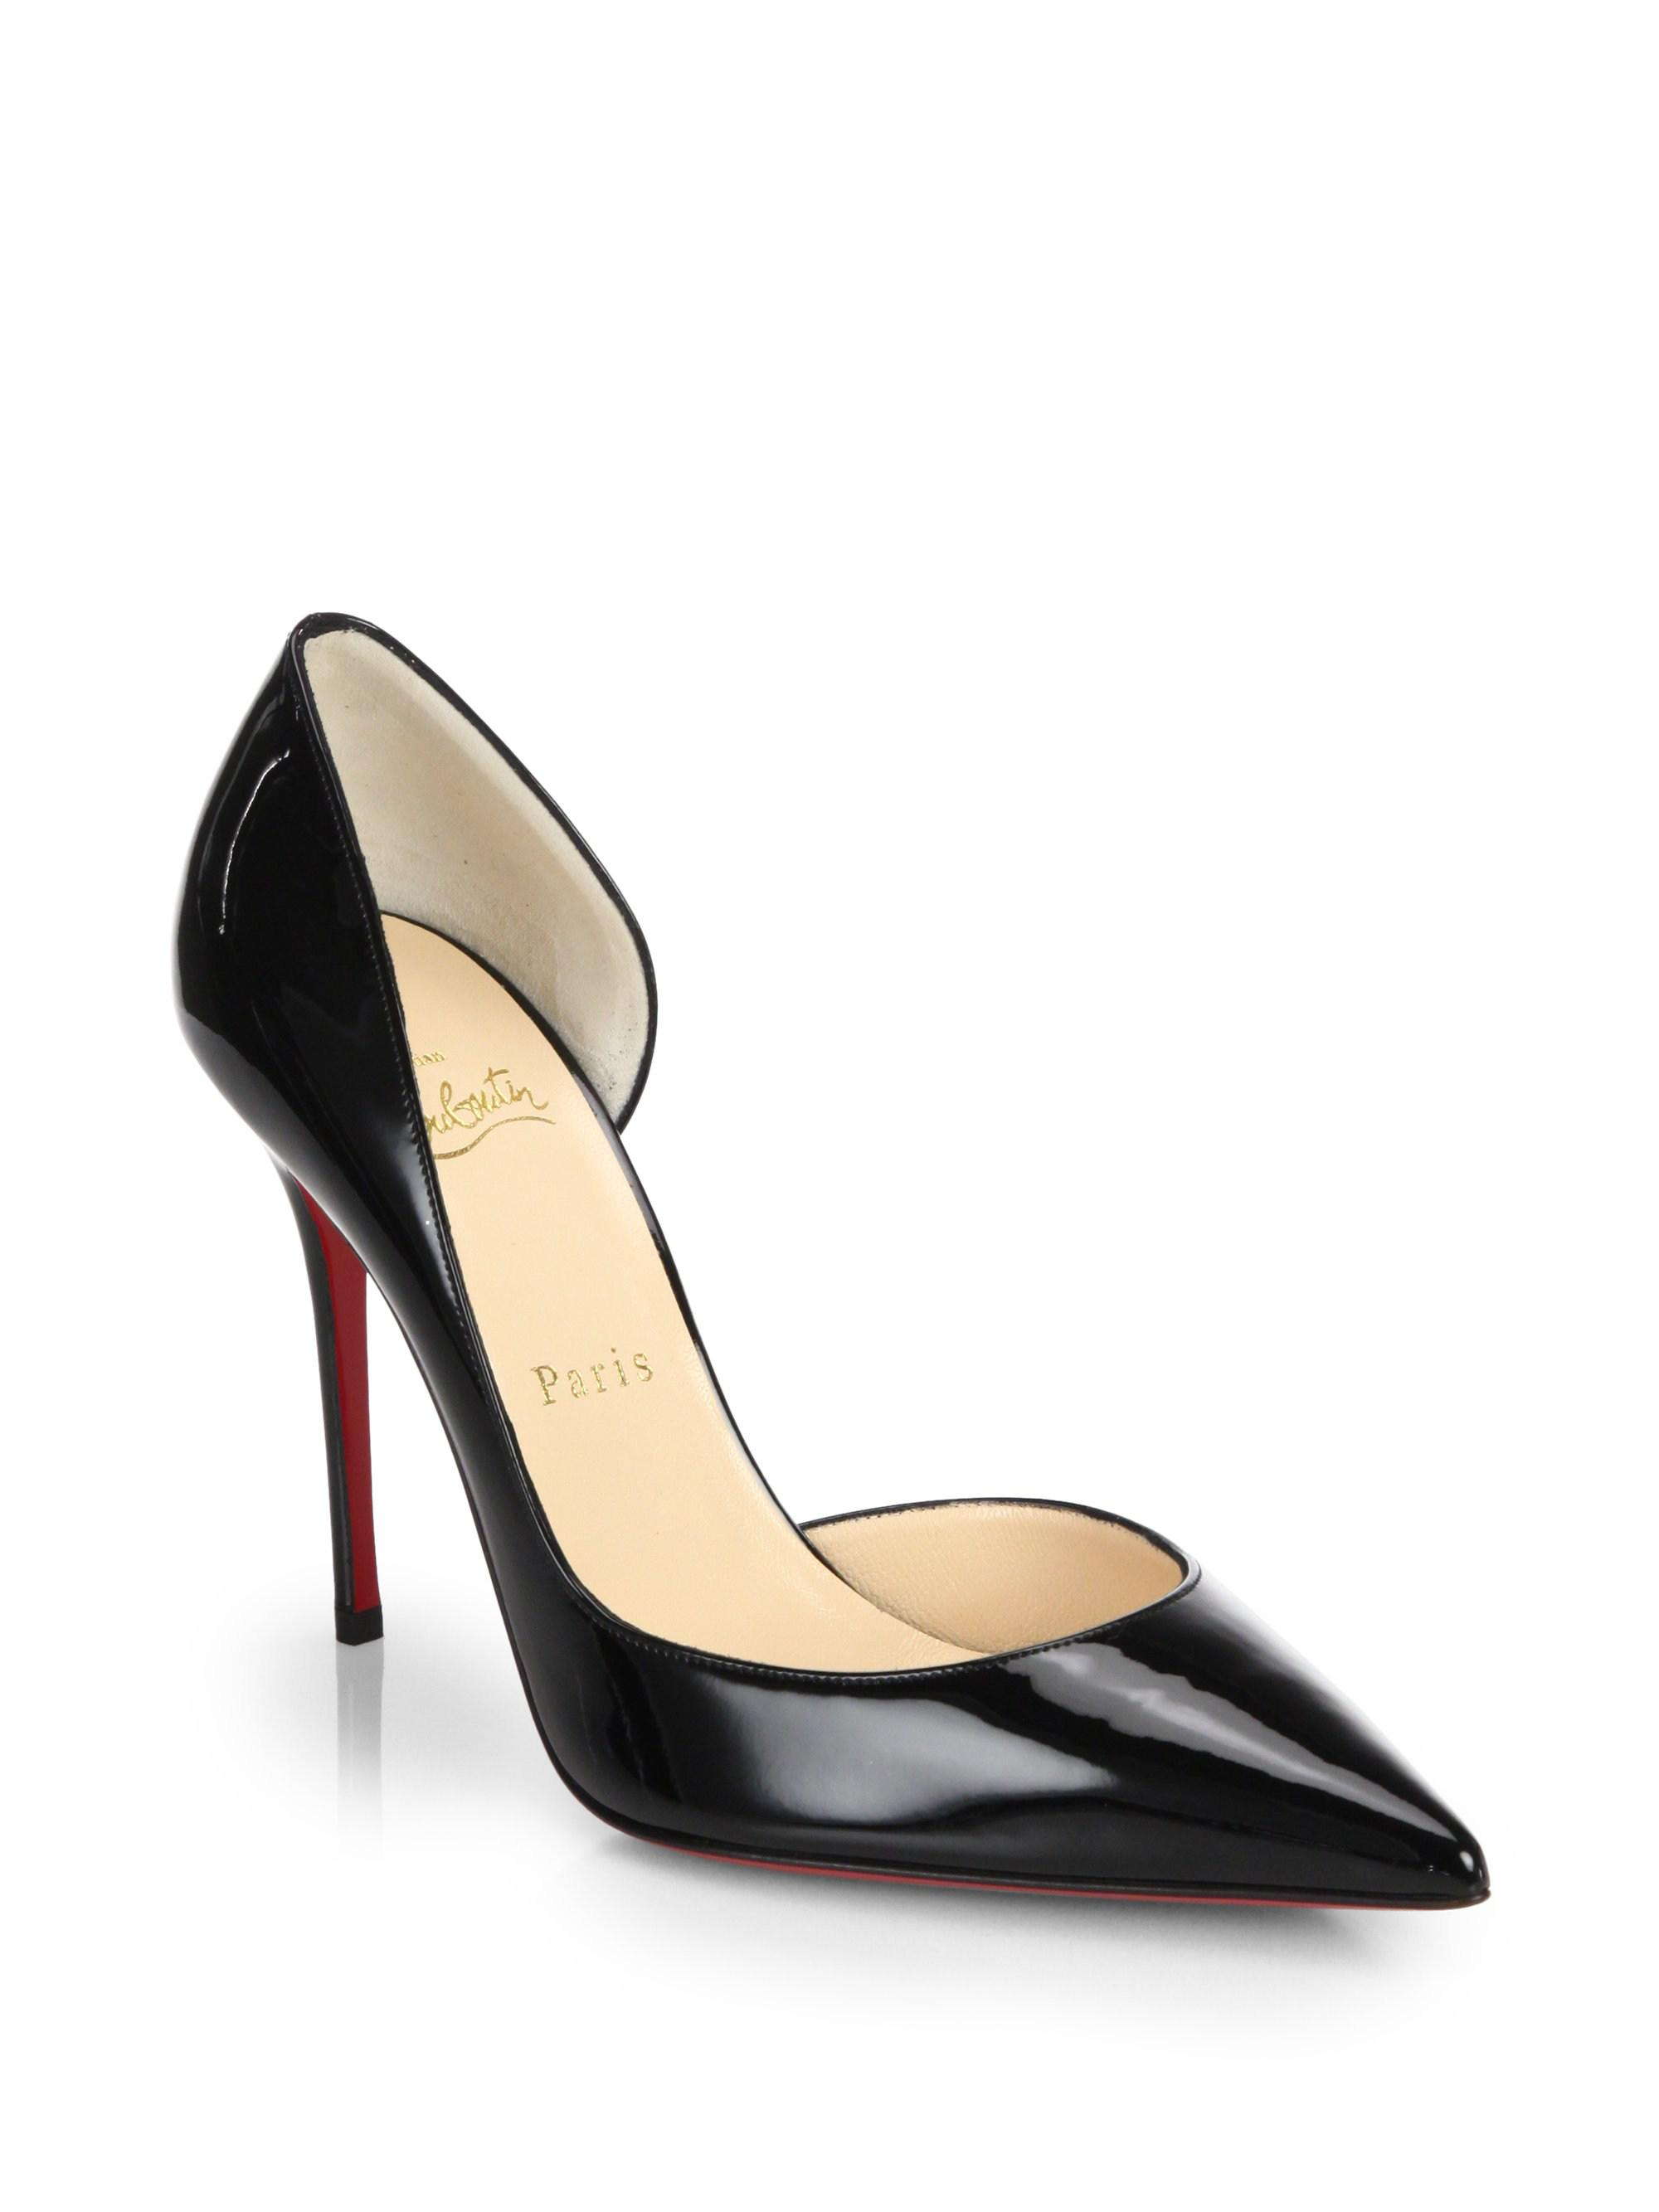 5eec9115f45f Christian Louboutin Iriza 100 Patent Leather Half D orsay Pumps in ...